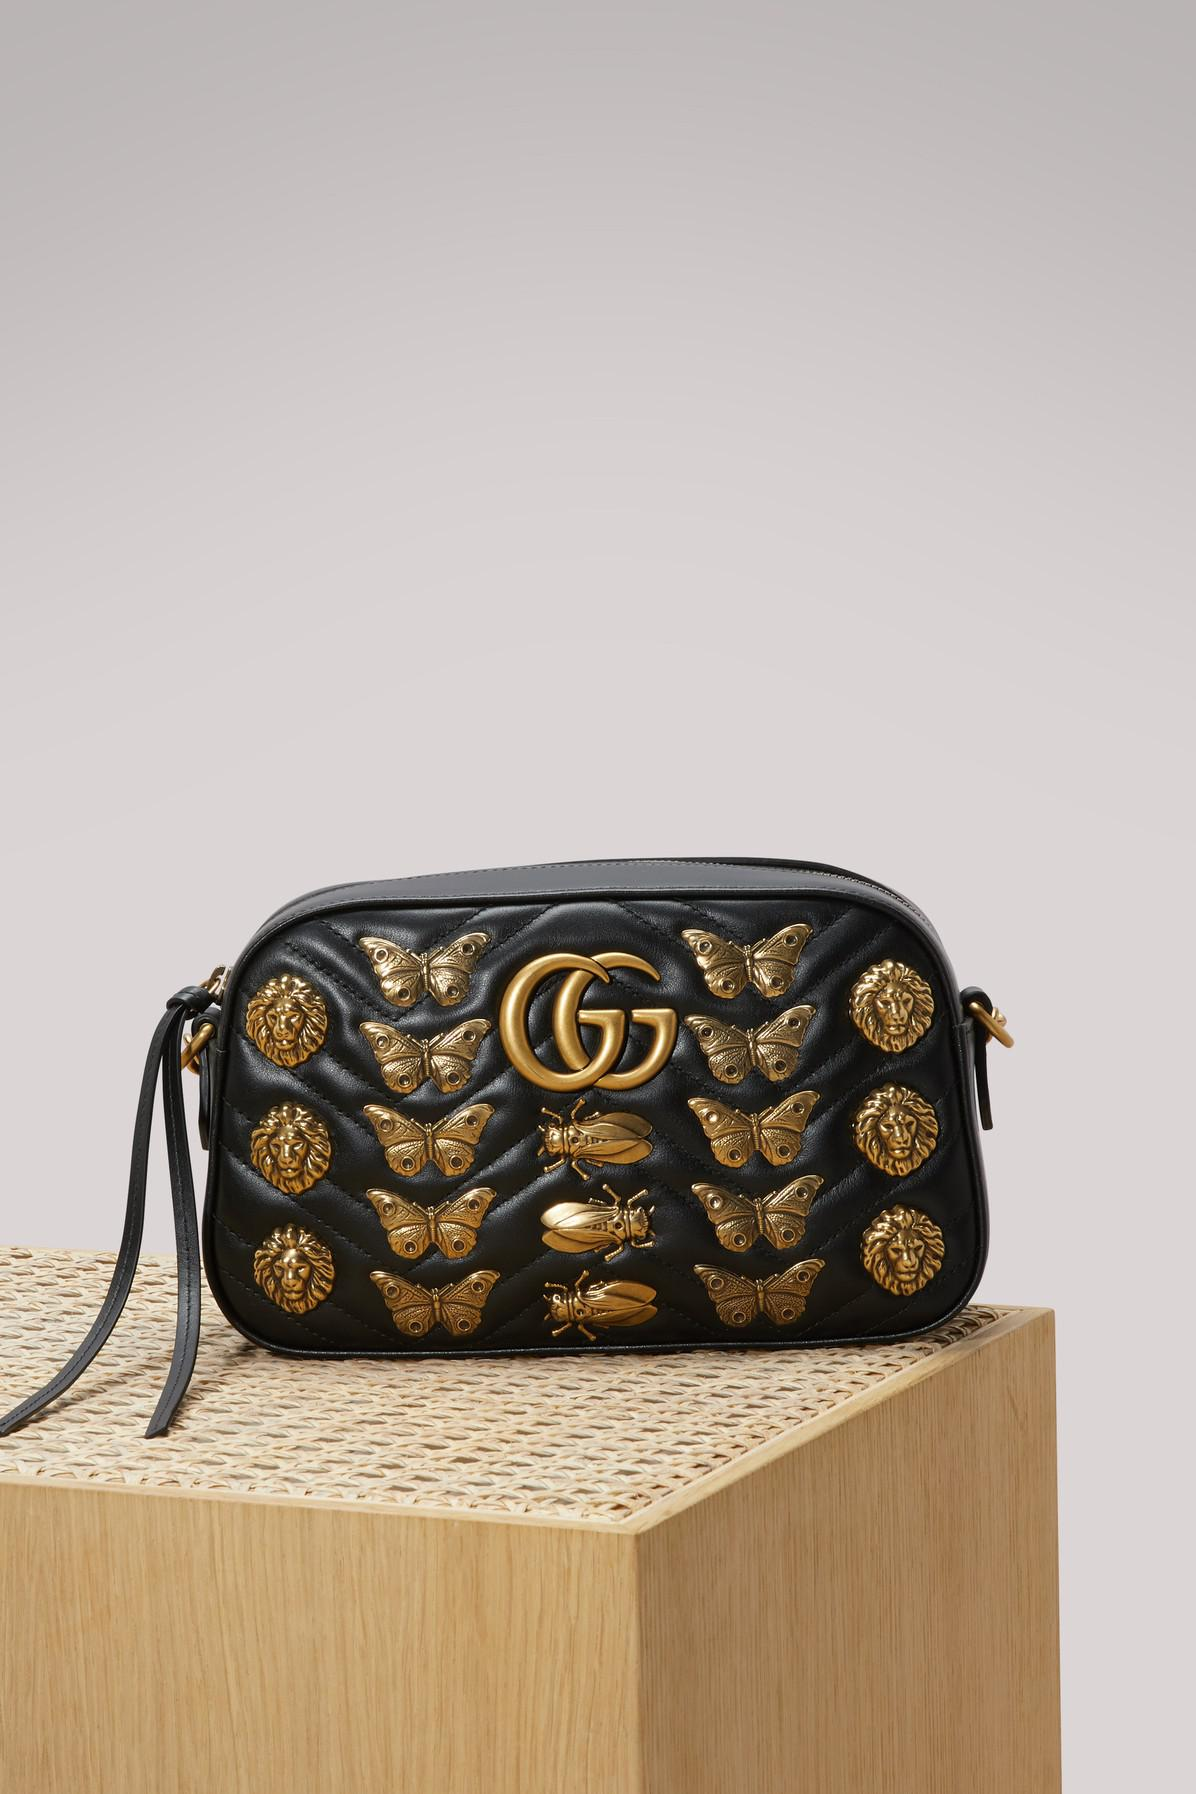 0d202b4aa0f1a5 Gucci Gg Marmont Animal Studs Shoulder Bag in Black - Lyst